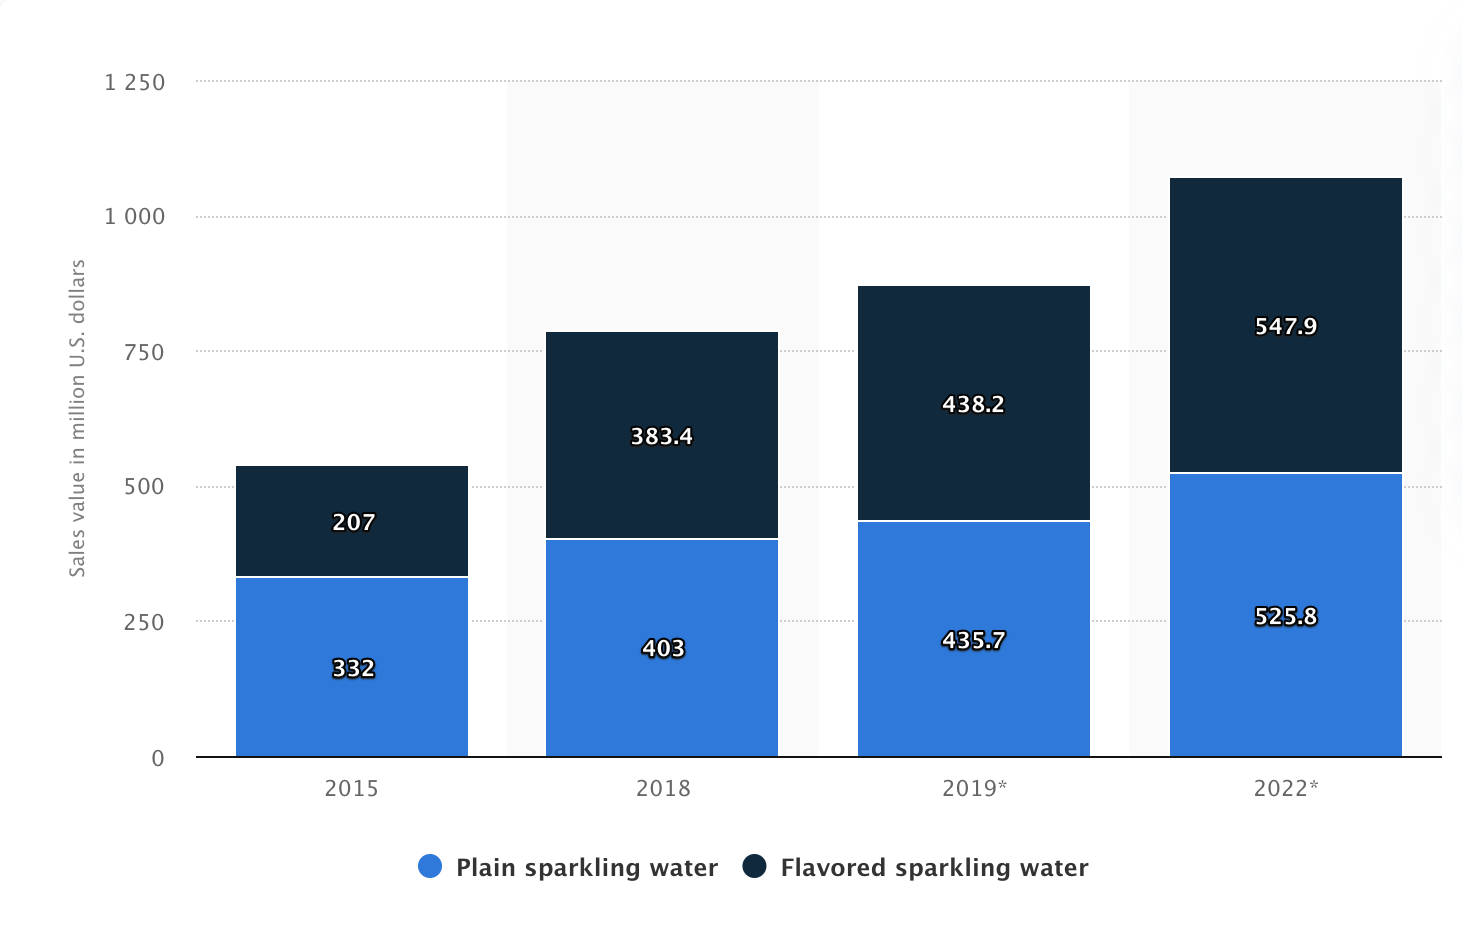 Retail sales value of sparkling water in Canada from 2015 to 2022, by type(in million U.S. dollars)